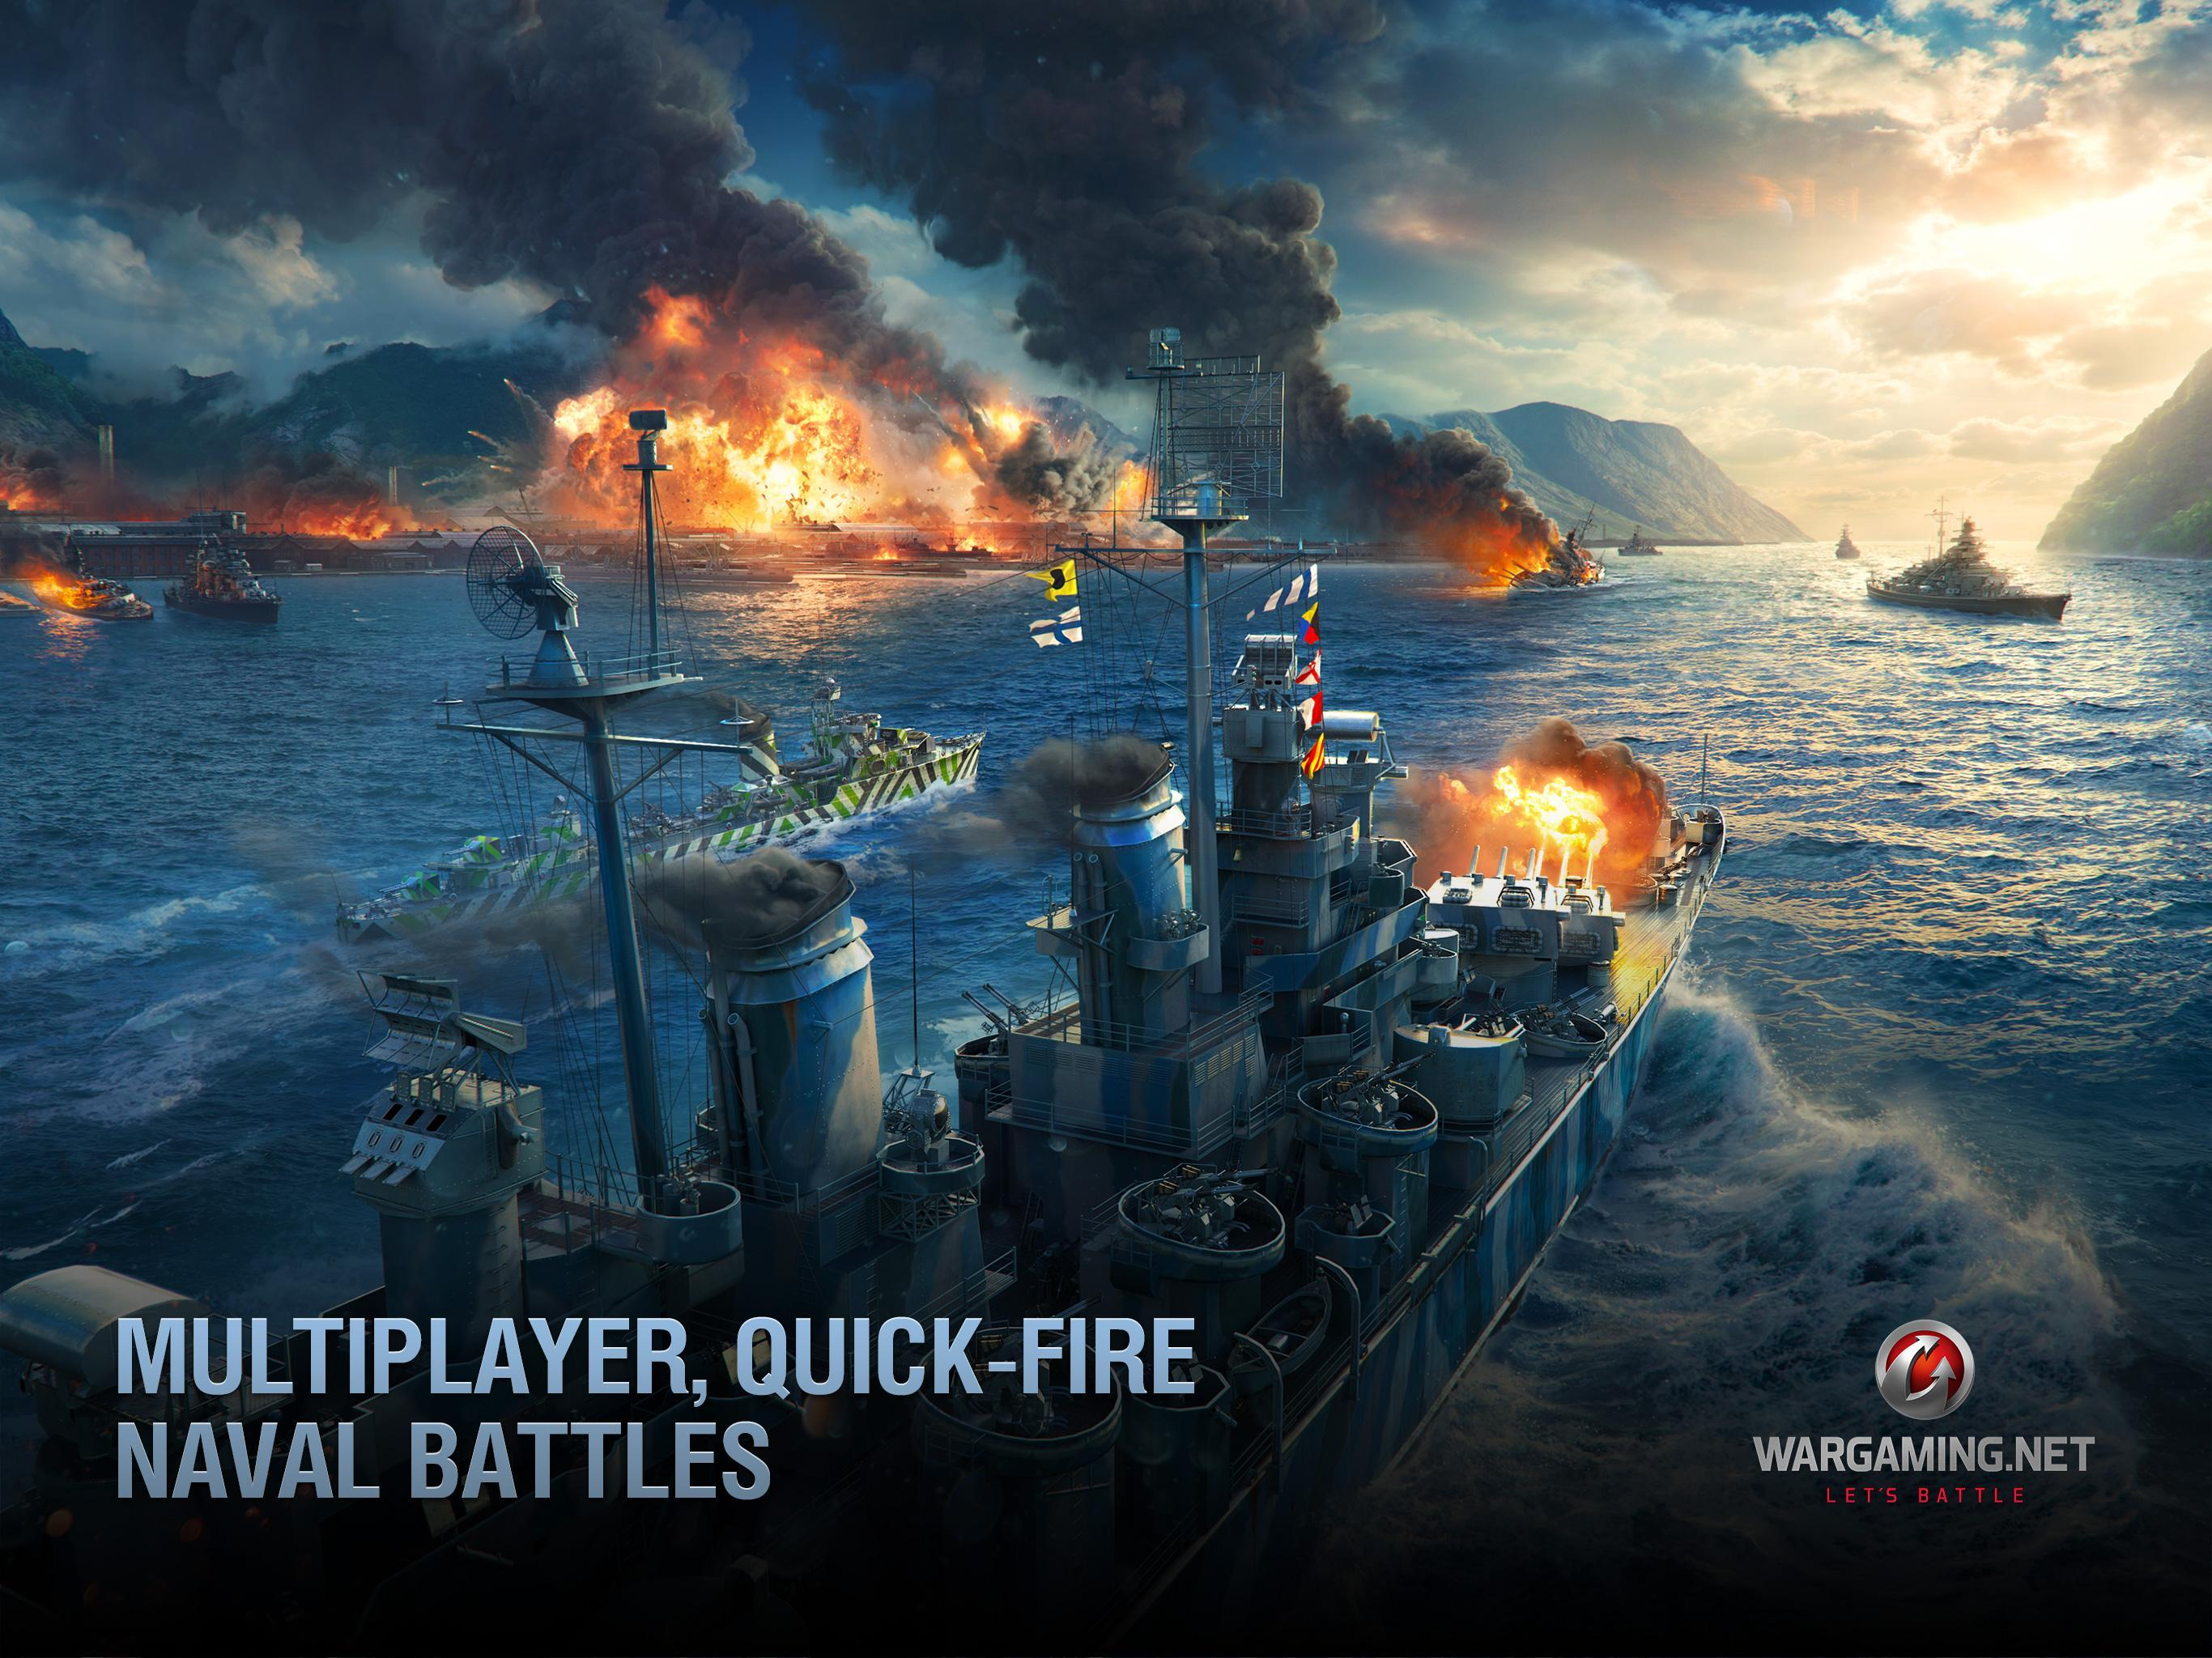 World of Warships Blitz: Gunship Action War Game 3.3.0 Screenshot 10